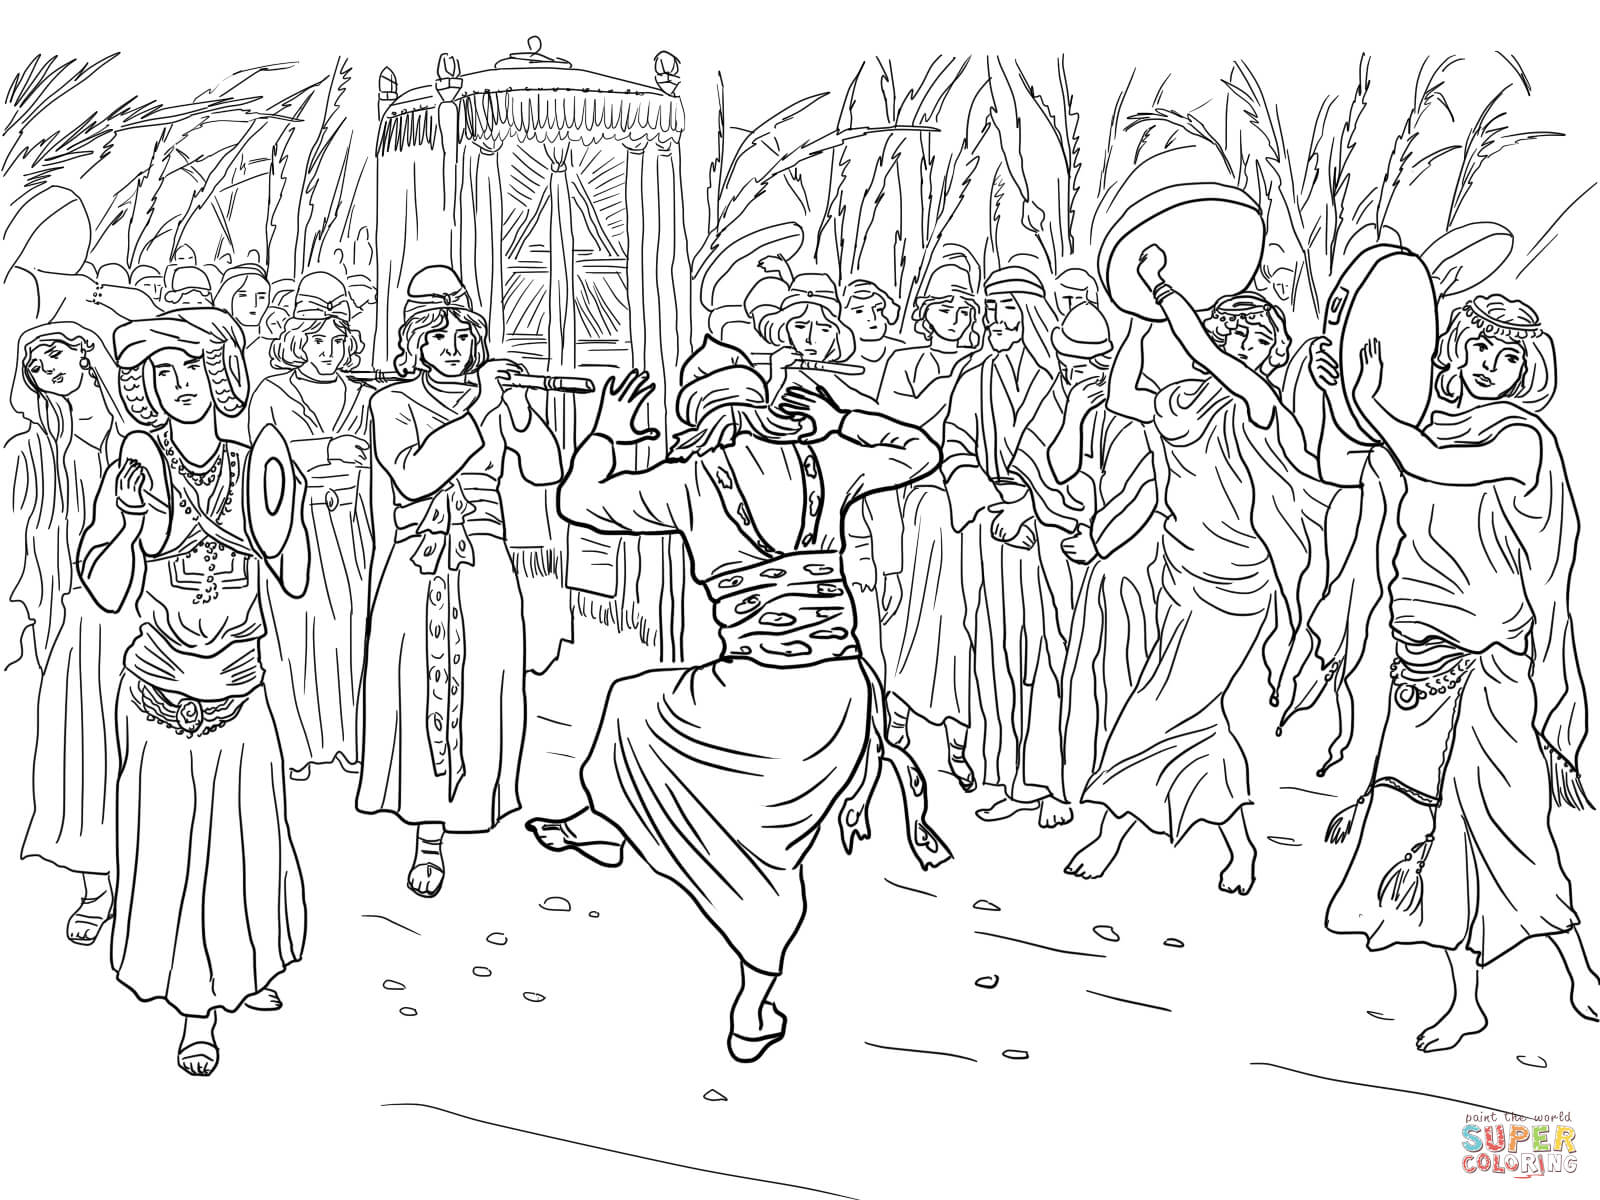 ark of the covenant coloring page kidco labs resources downloads coloring sheets the page of coloring ark covenant